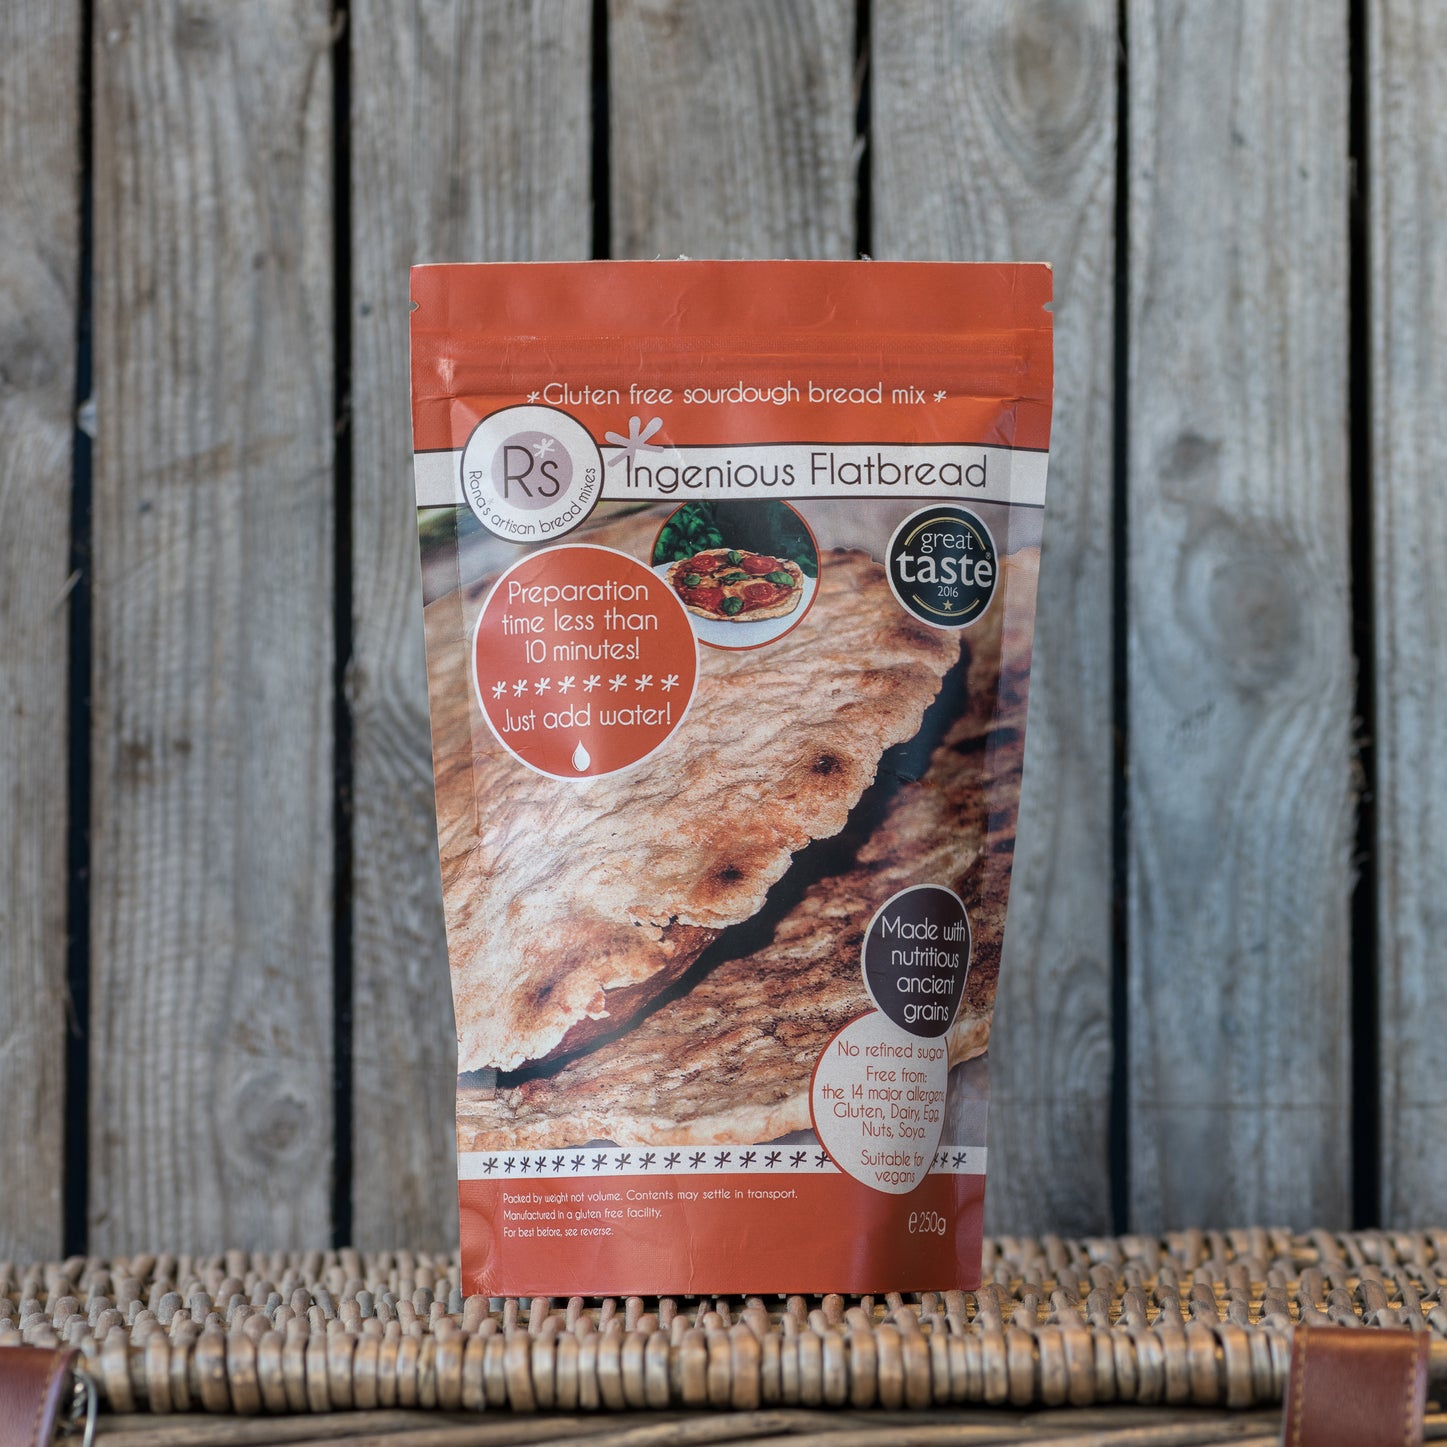 Ingenious Flatbread Sourdough Bread Mix